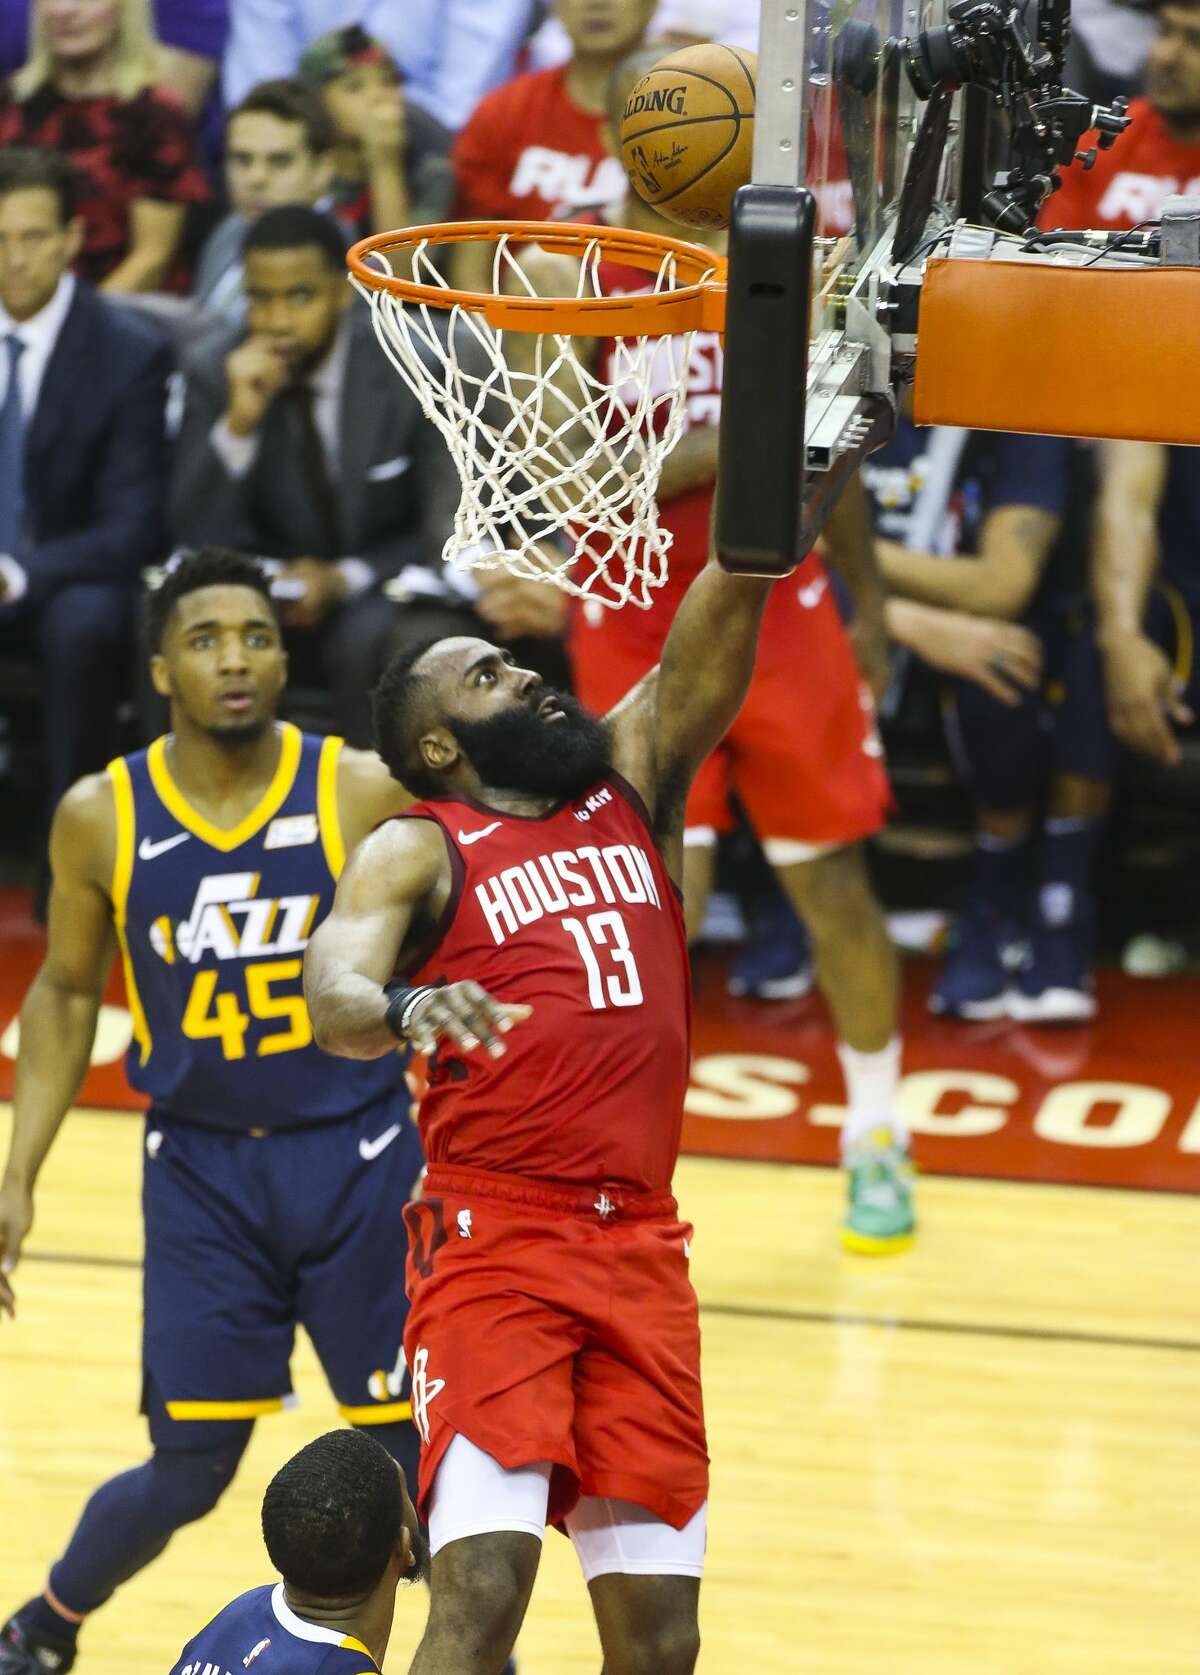 Houston Rockets guard James Harden (13) scores during the first half of game 2 of the NBA playoffs at the Toyota Center in Houston, Wednesday, April 17, 2019.